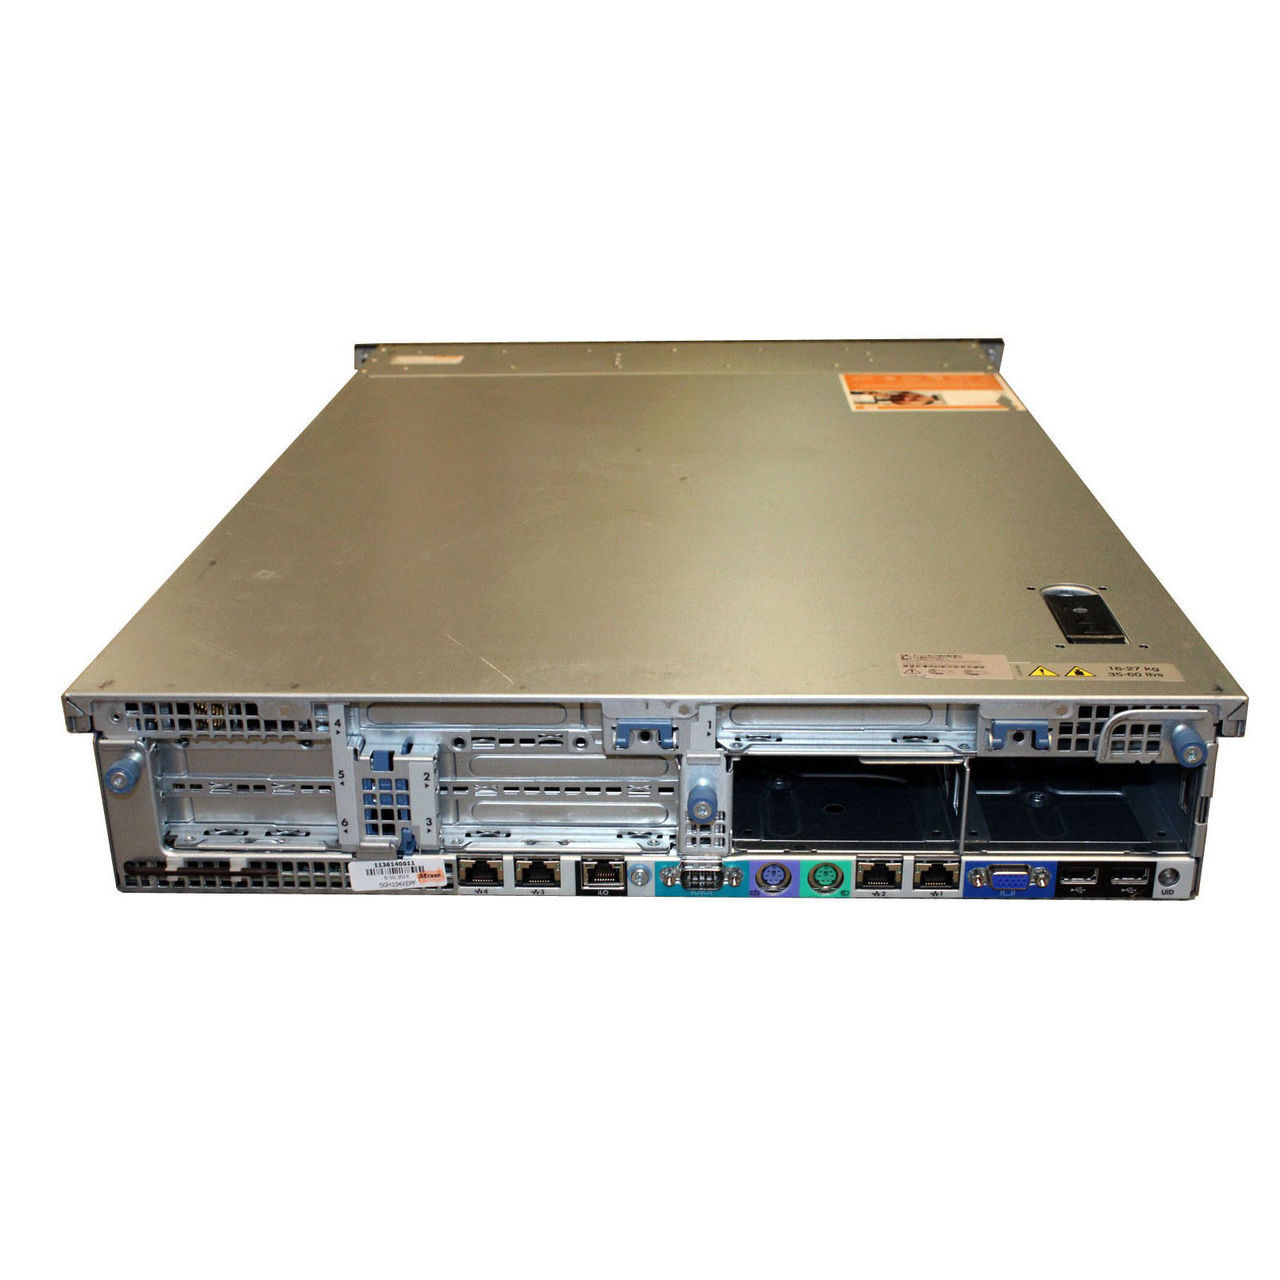 HP PROLIANT DL360 G7 (CTO) RACK SERVER - rear view